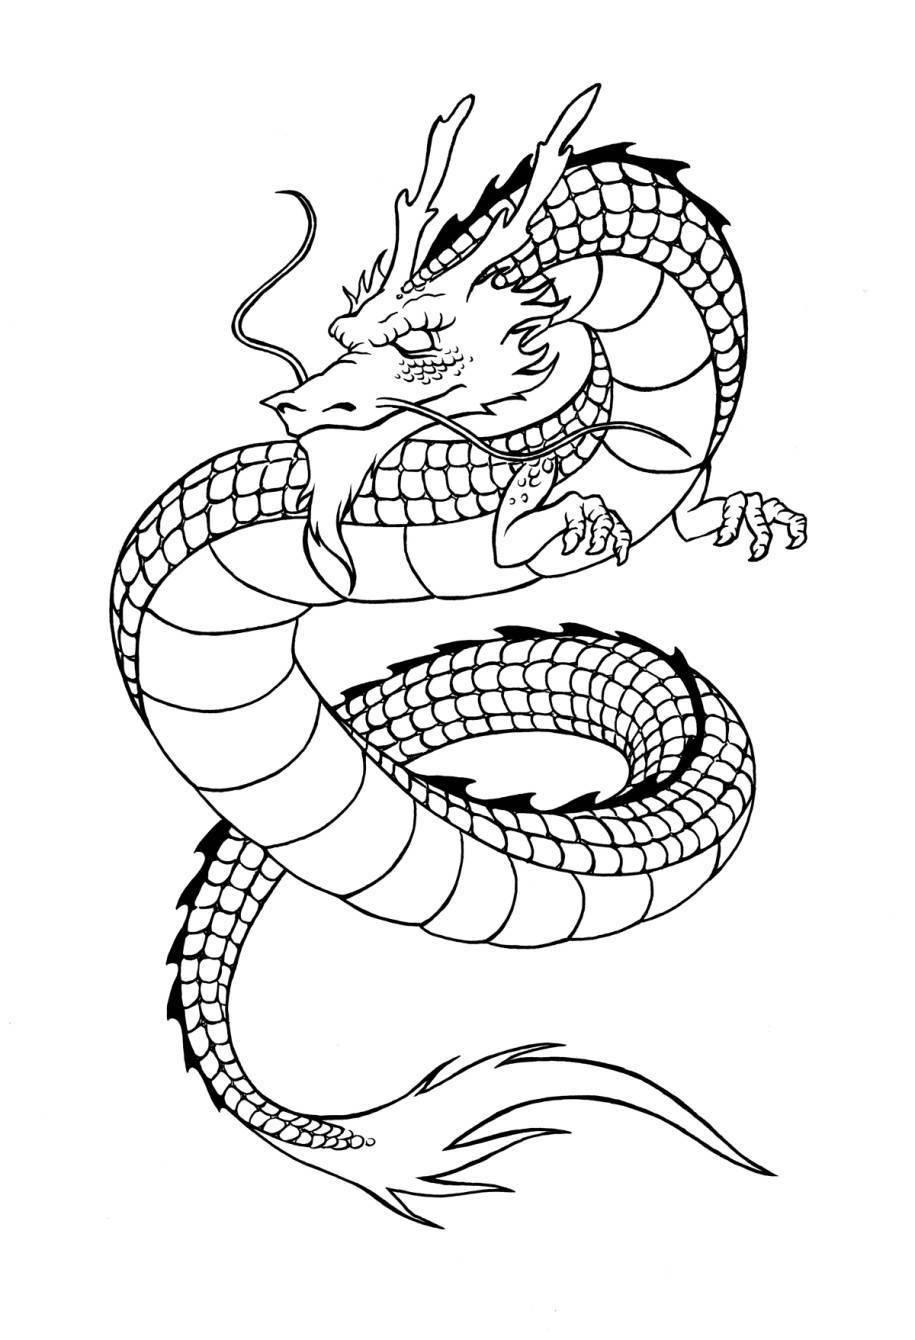 coloring book adults printable dragon coloring pages for adults best coloring pages for book printable coloring adults